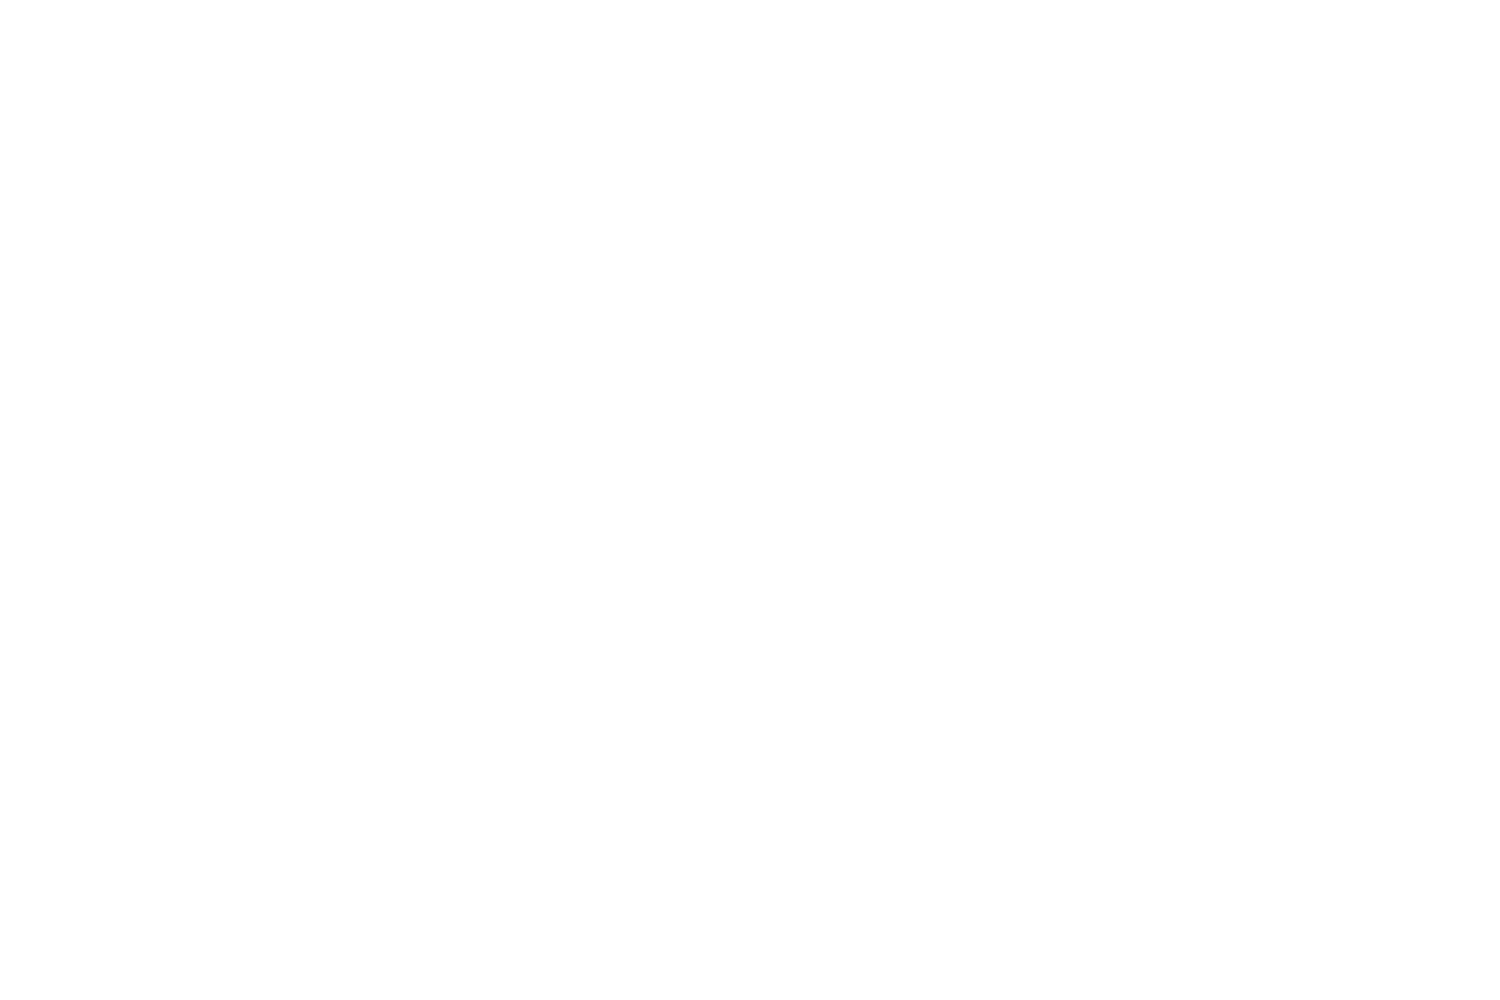 DAP The Contract